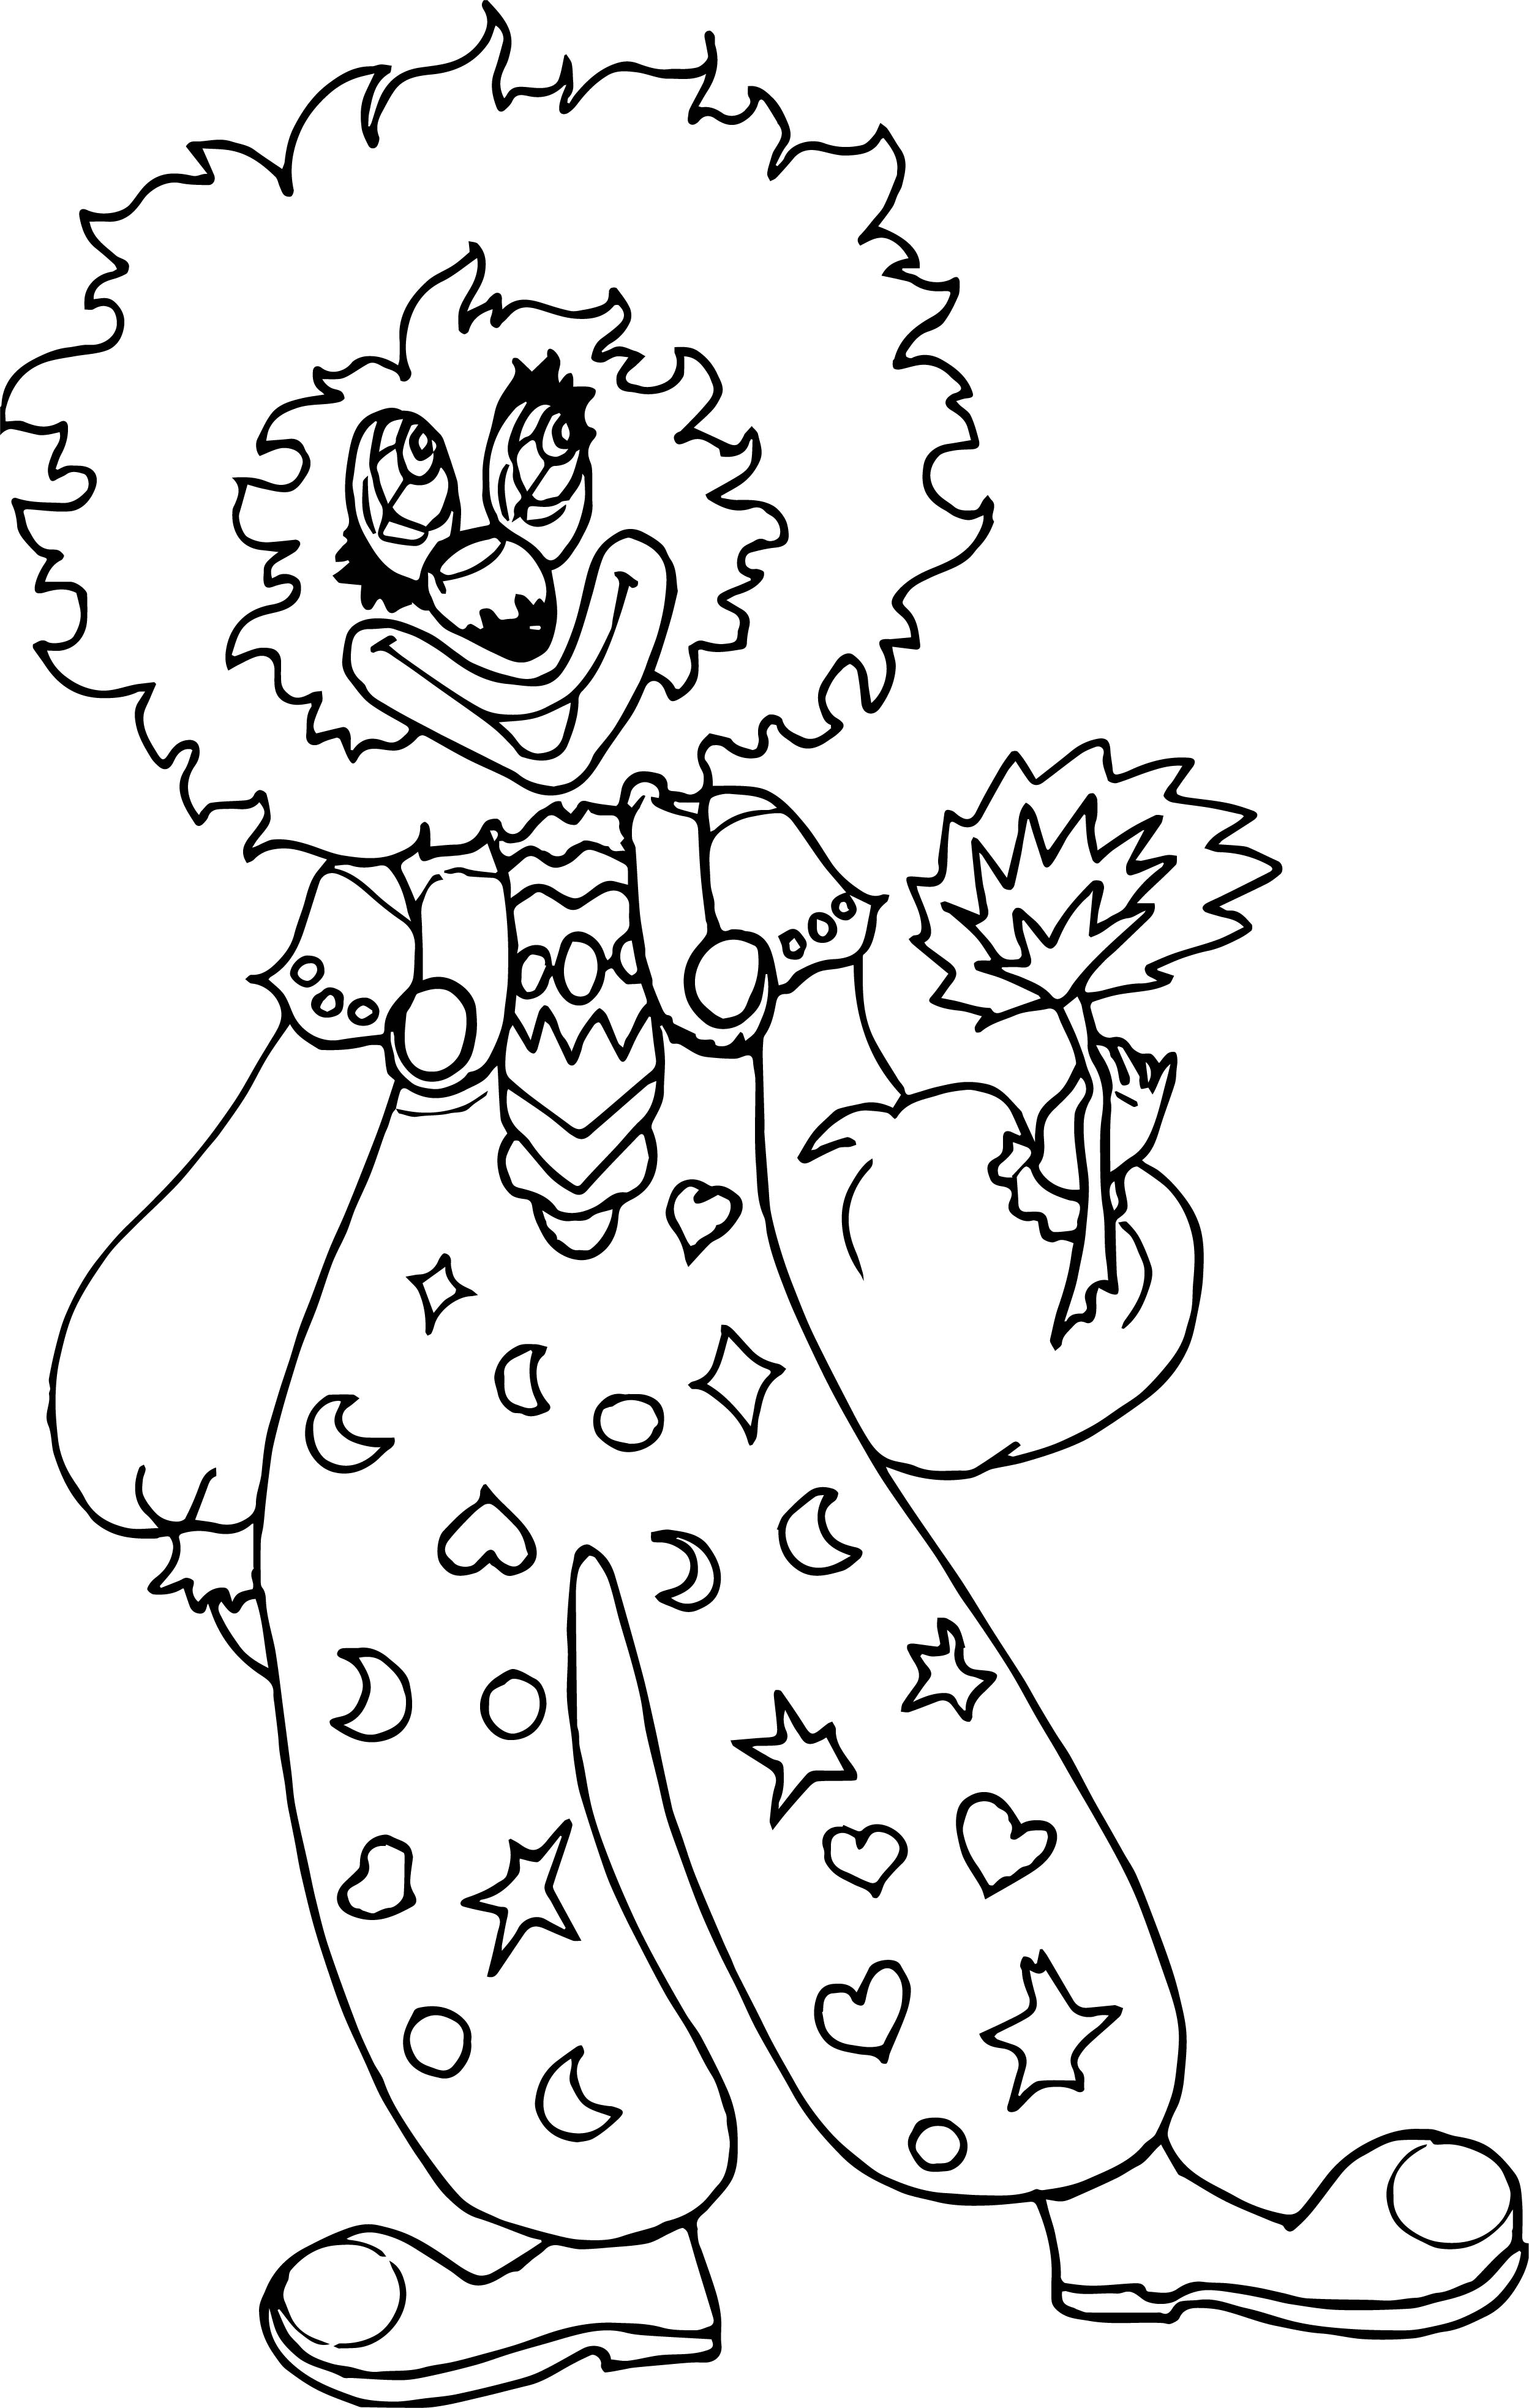 Clown Coloring Page WeColoringPage 091